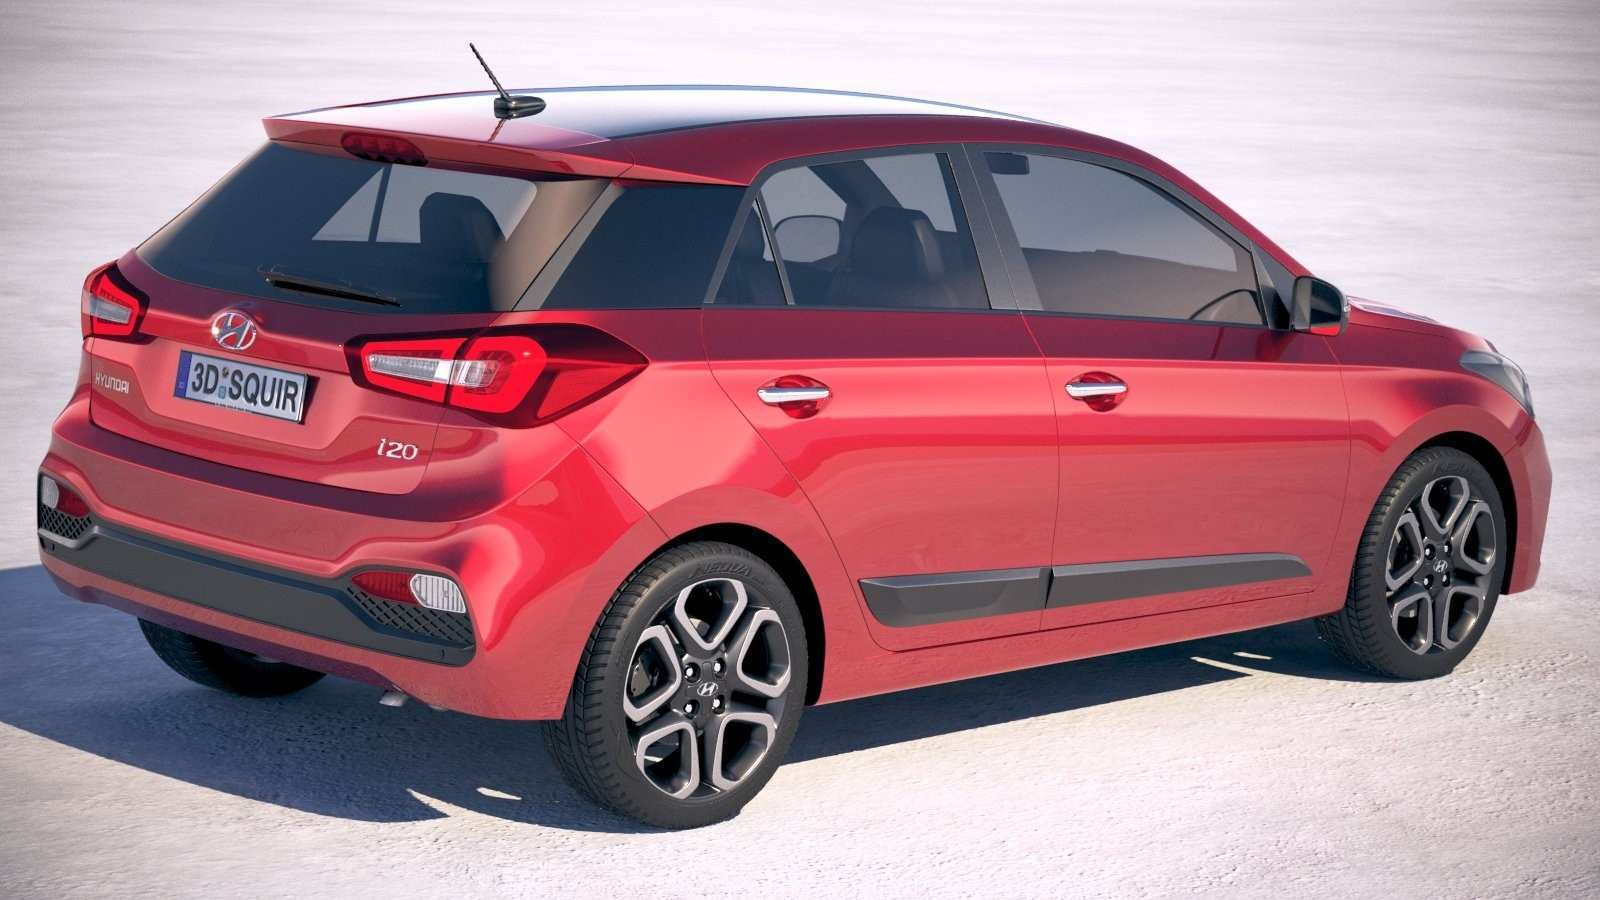 71 The Best 2019 Hyundai I20 Price